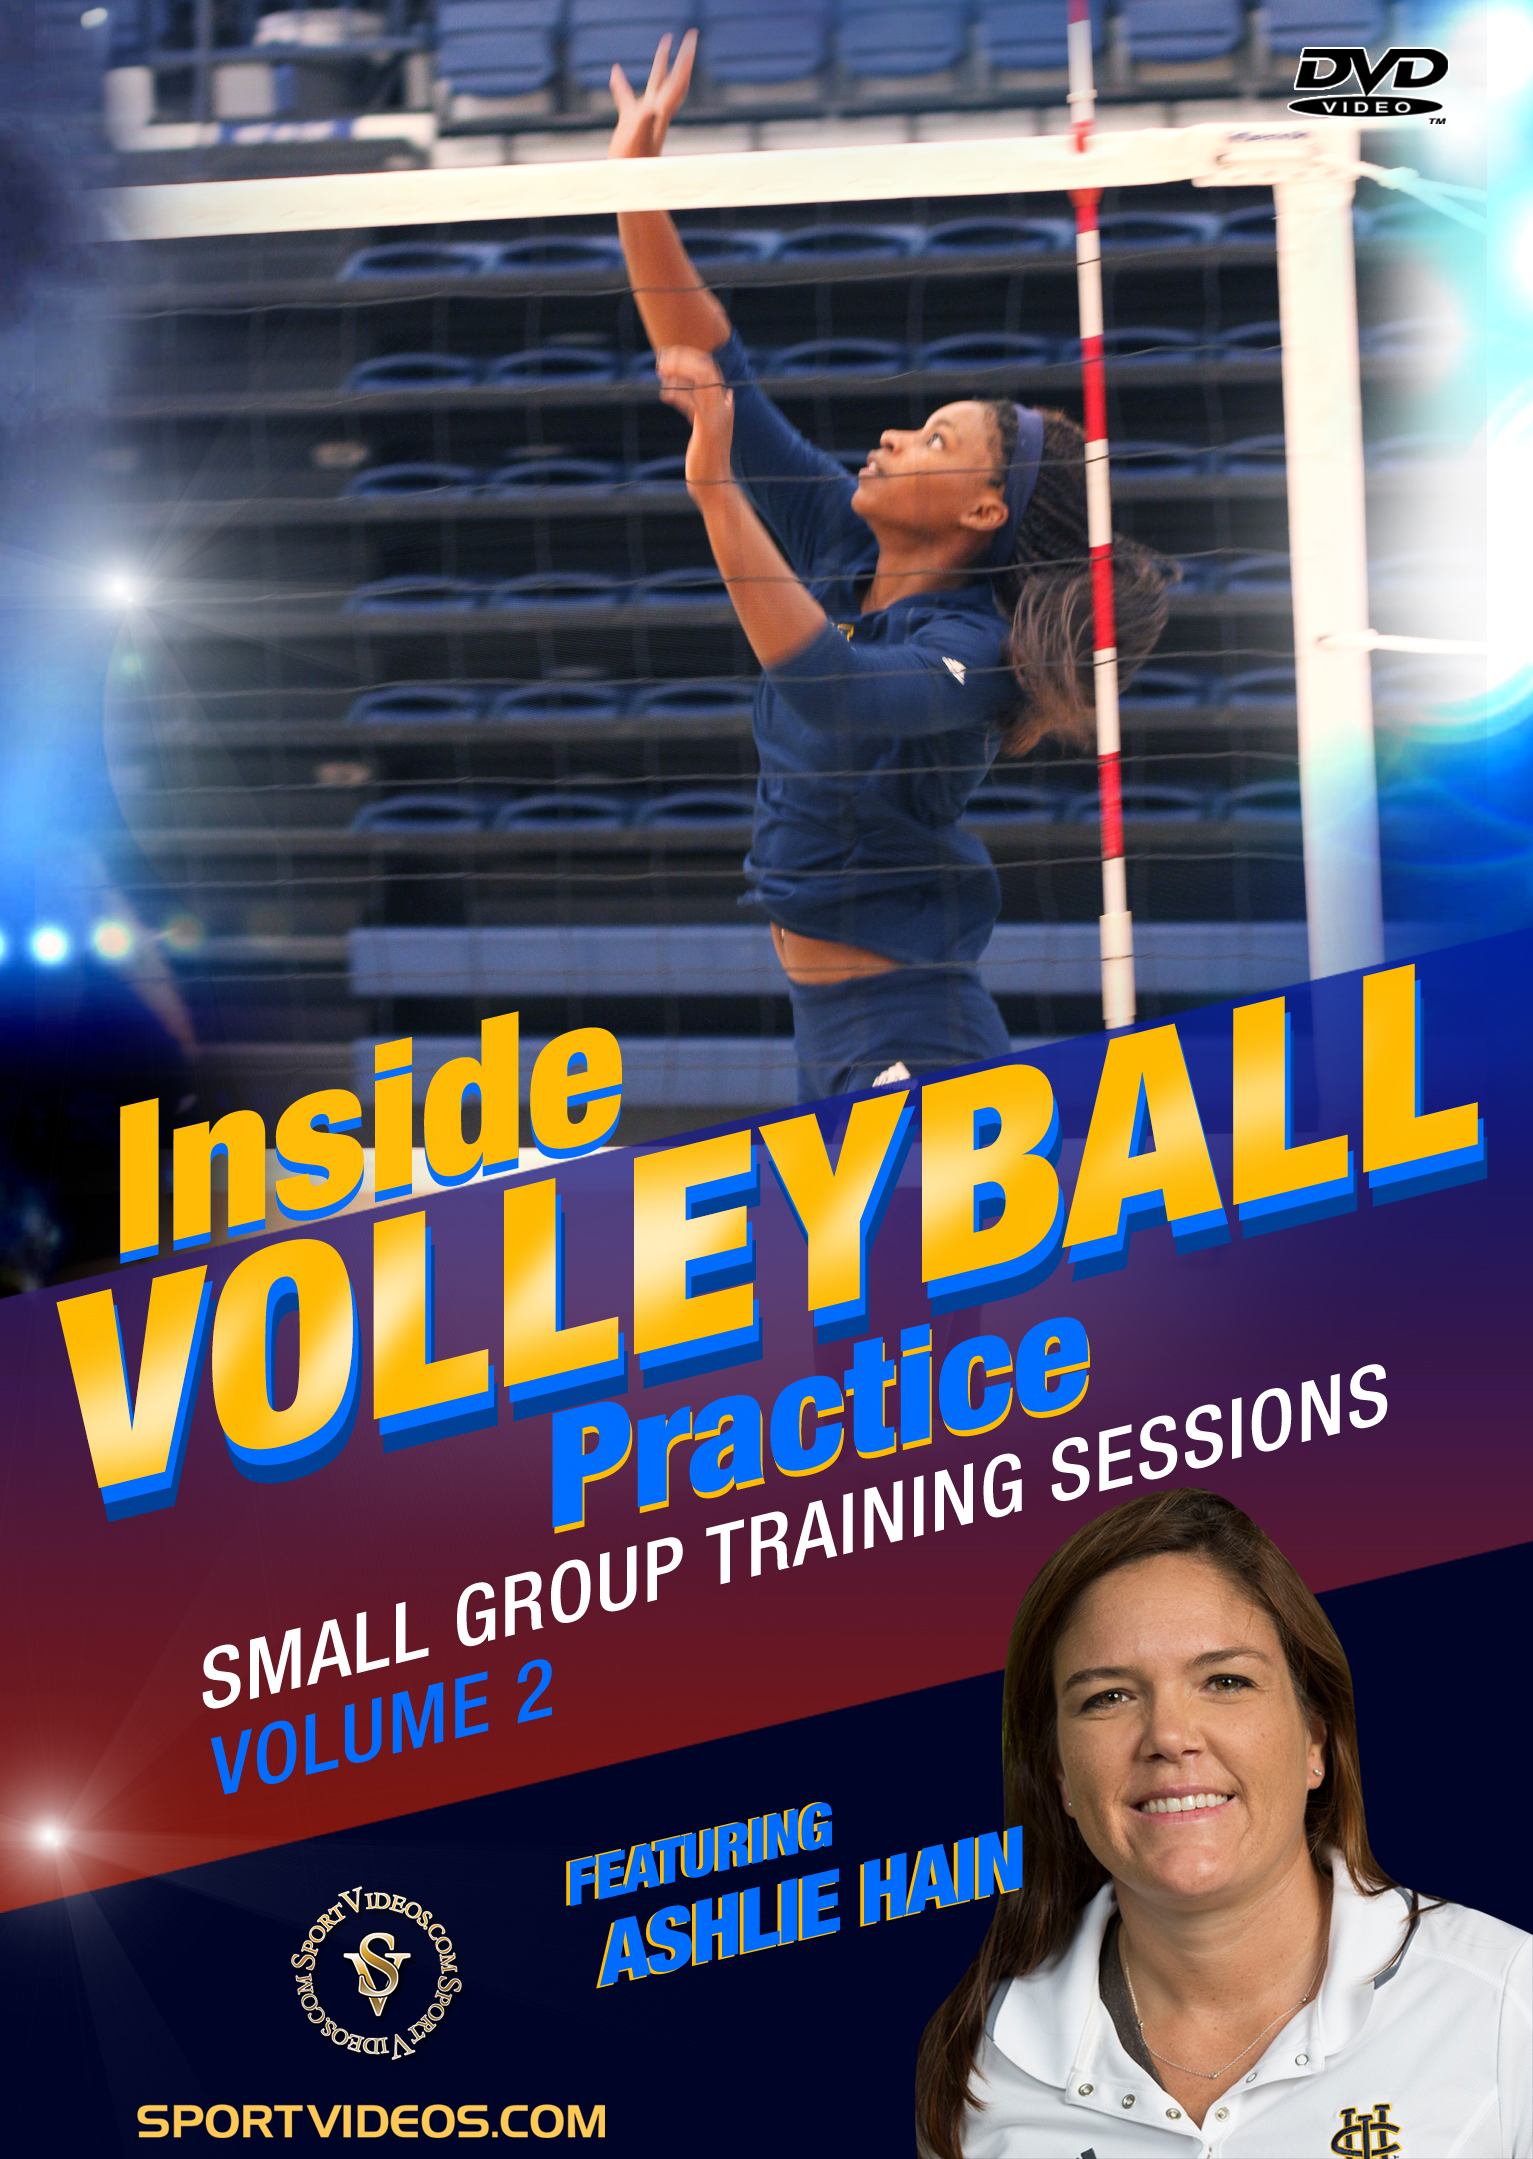 Inside Volleyball Practice: Small Group Training Sessions Vol. 2